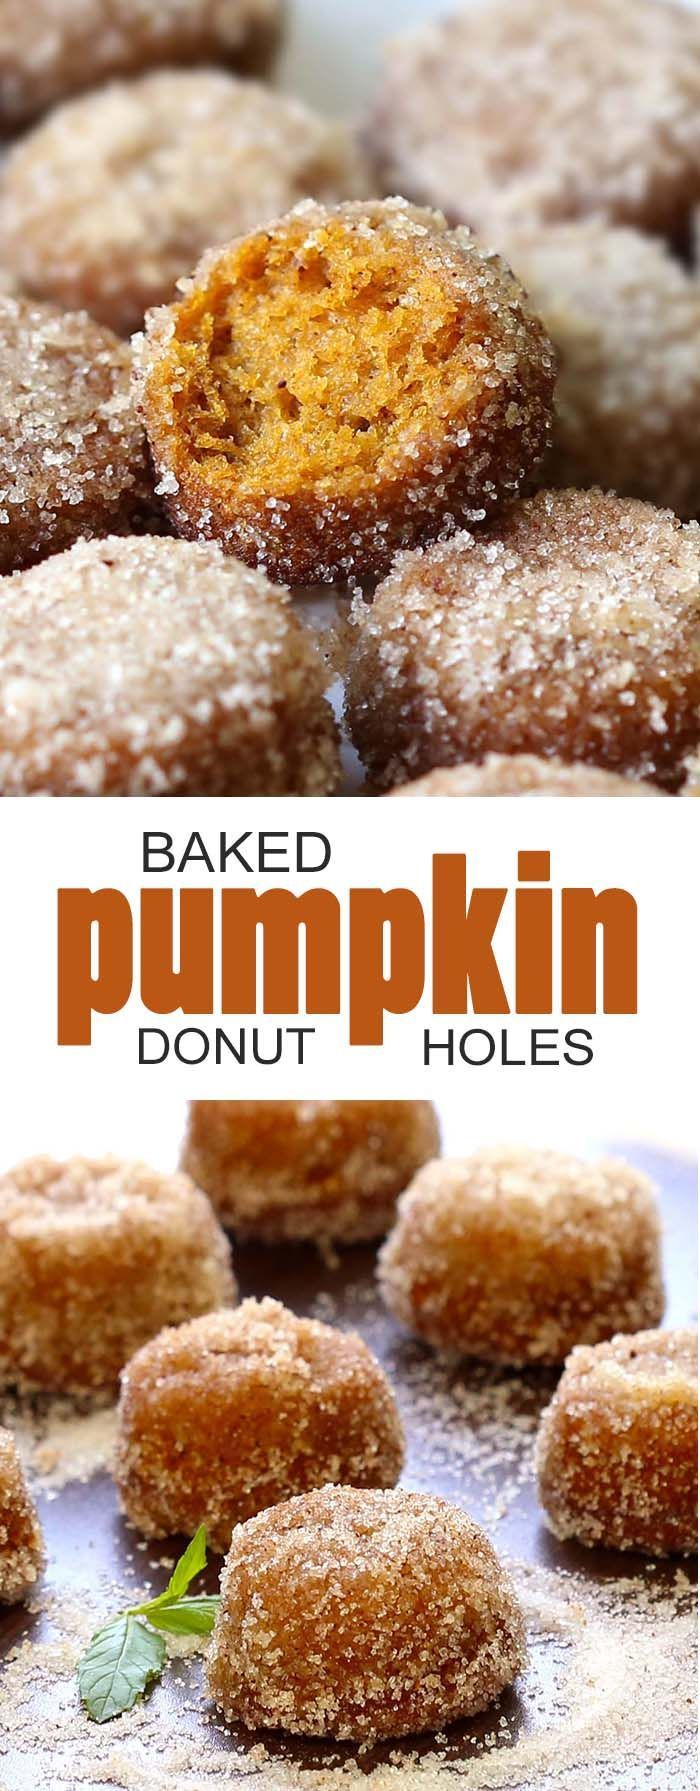 Baked Pumpkin Donut Holes - Cakescottage